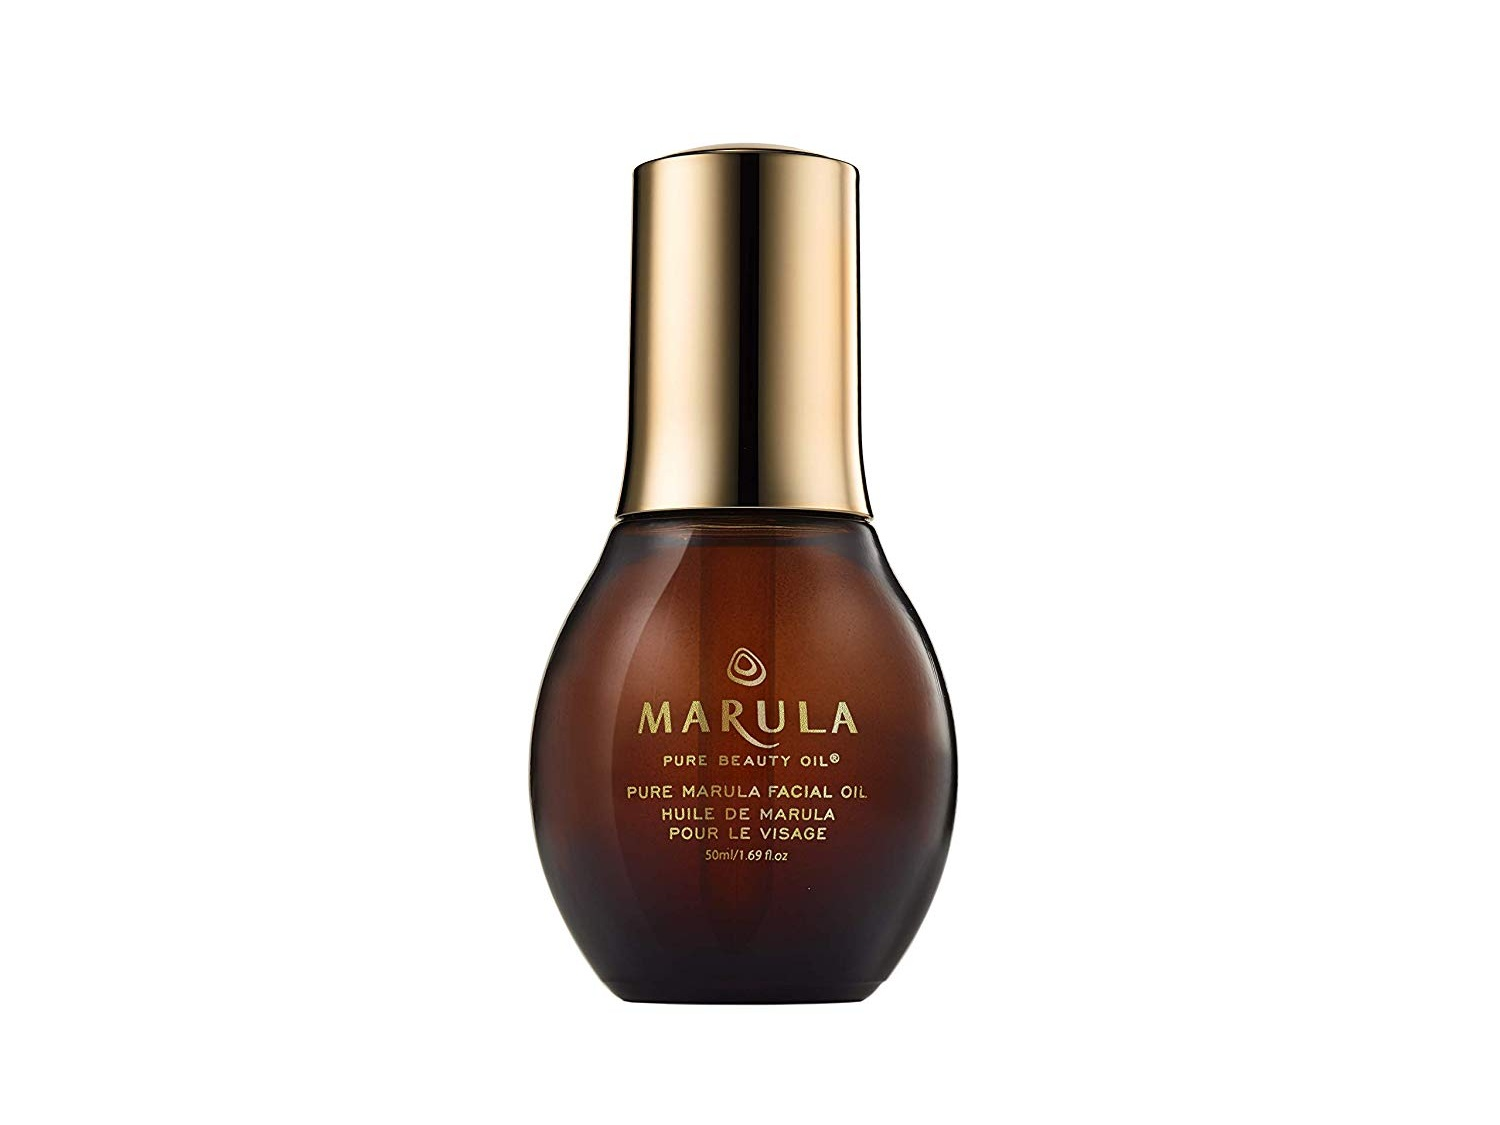 MARULA - Pure Beauty Oil from $72